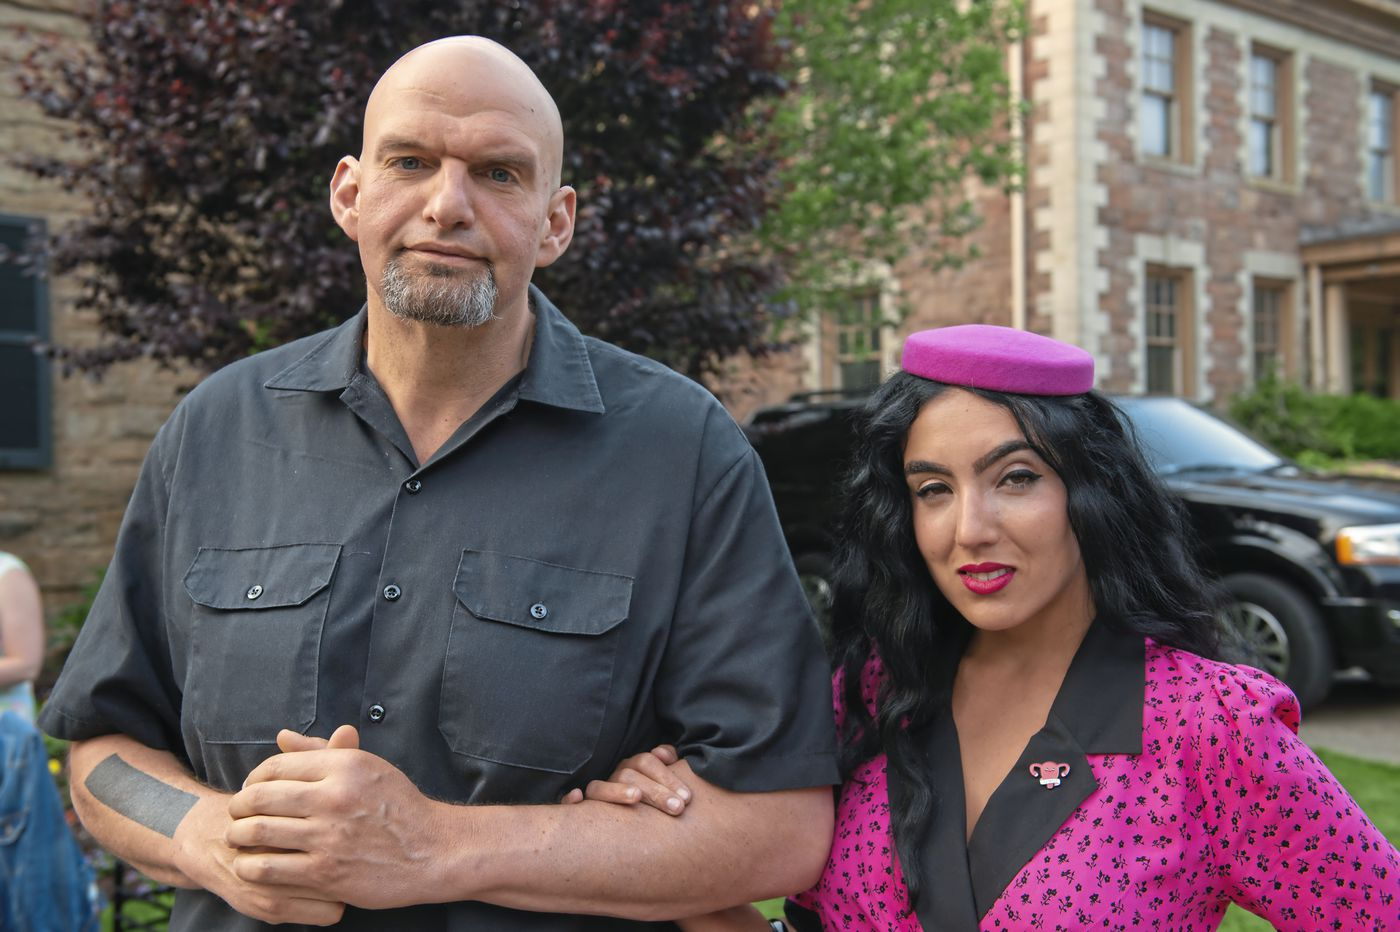 Pa. second lady Gisele Barreto Fetterman films woman calling her the N-word at a grocery store